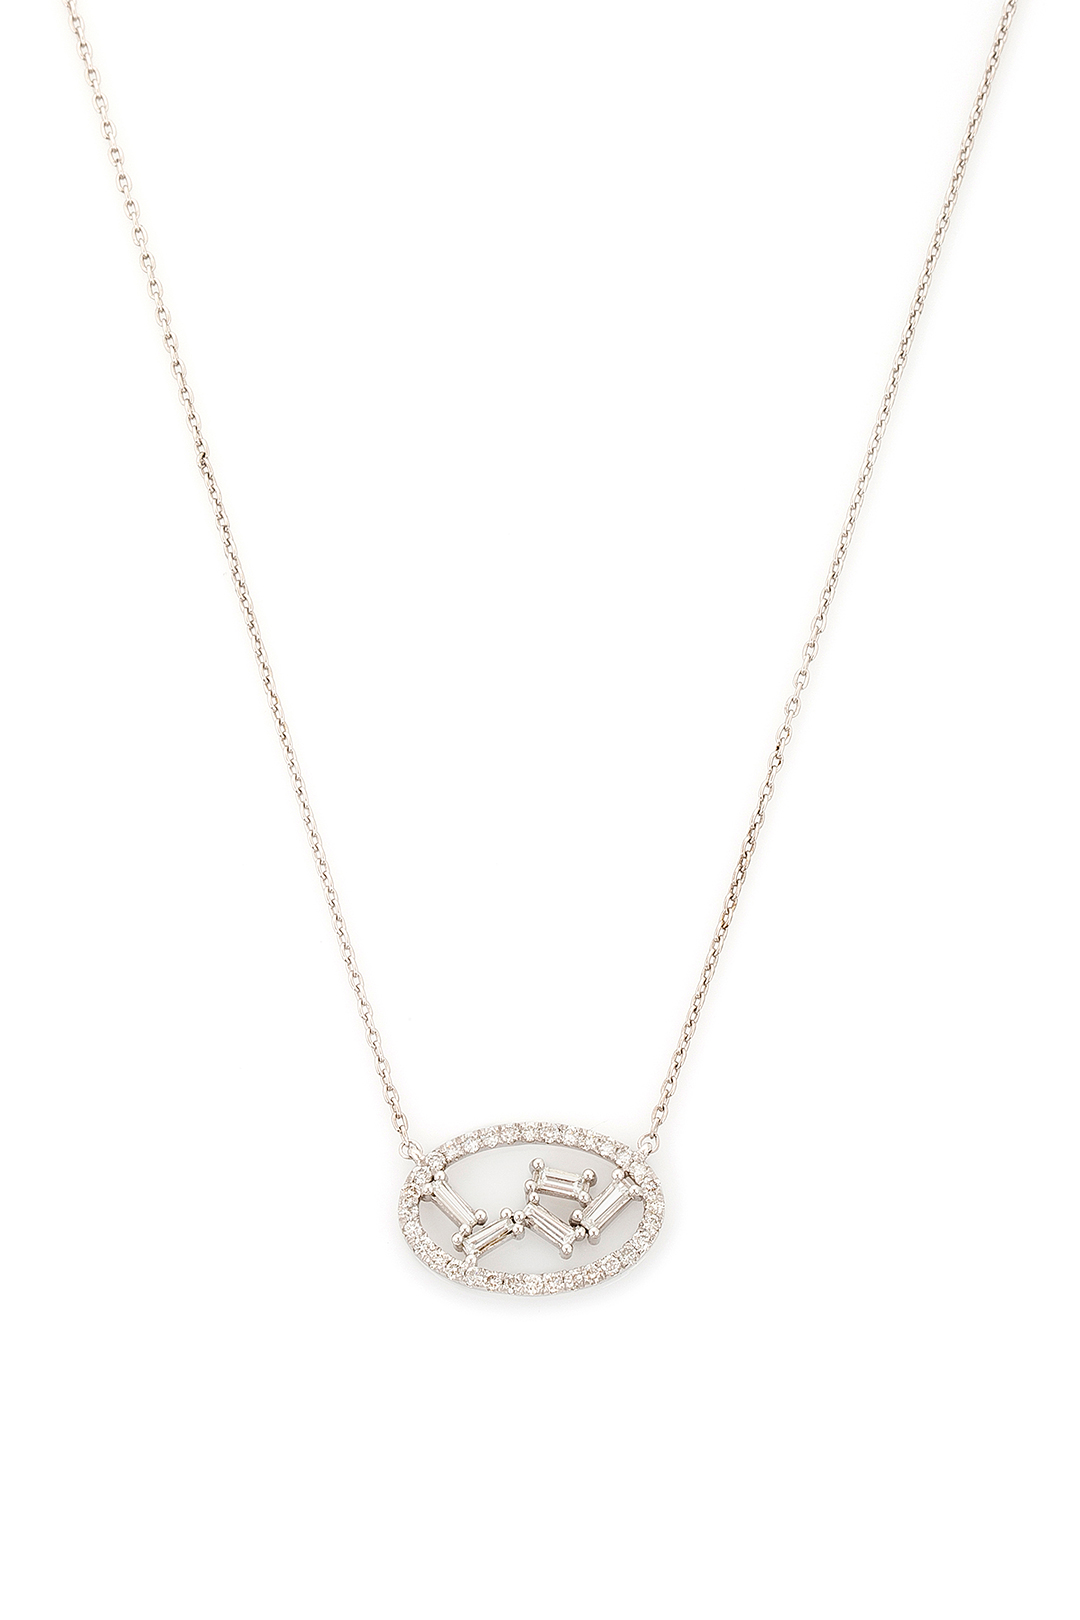 TRAPEZE DIAMOND NECKLACE